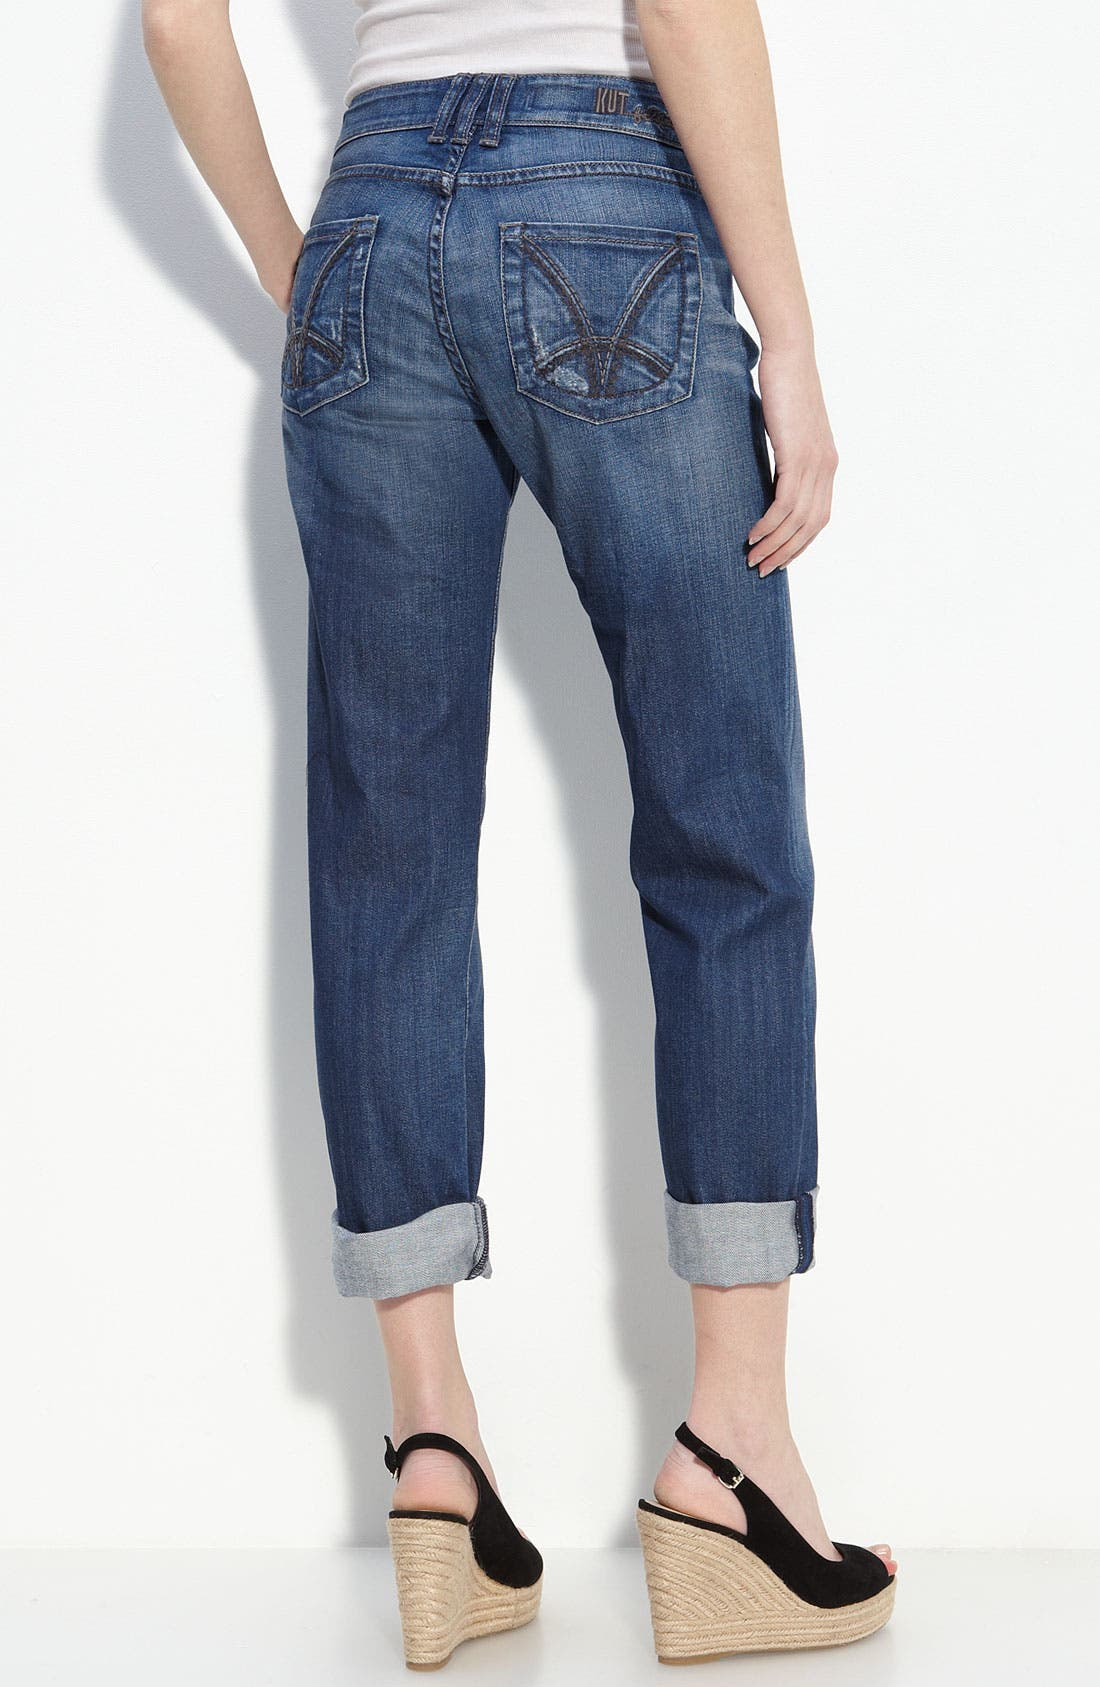 Alternate Image 2  - KUT from the Kloth 'Roll-Up' Boyfriend Stretch Jeans (Indulgent Wash)